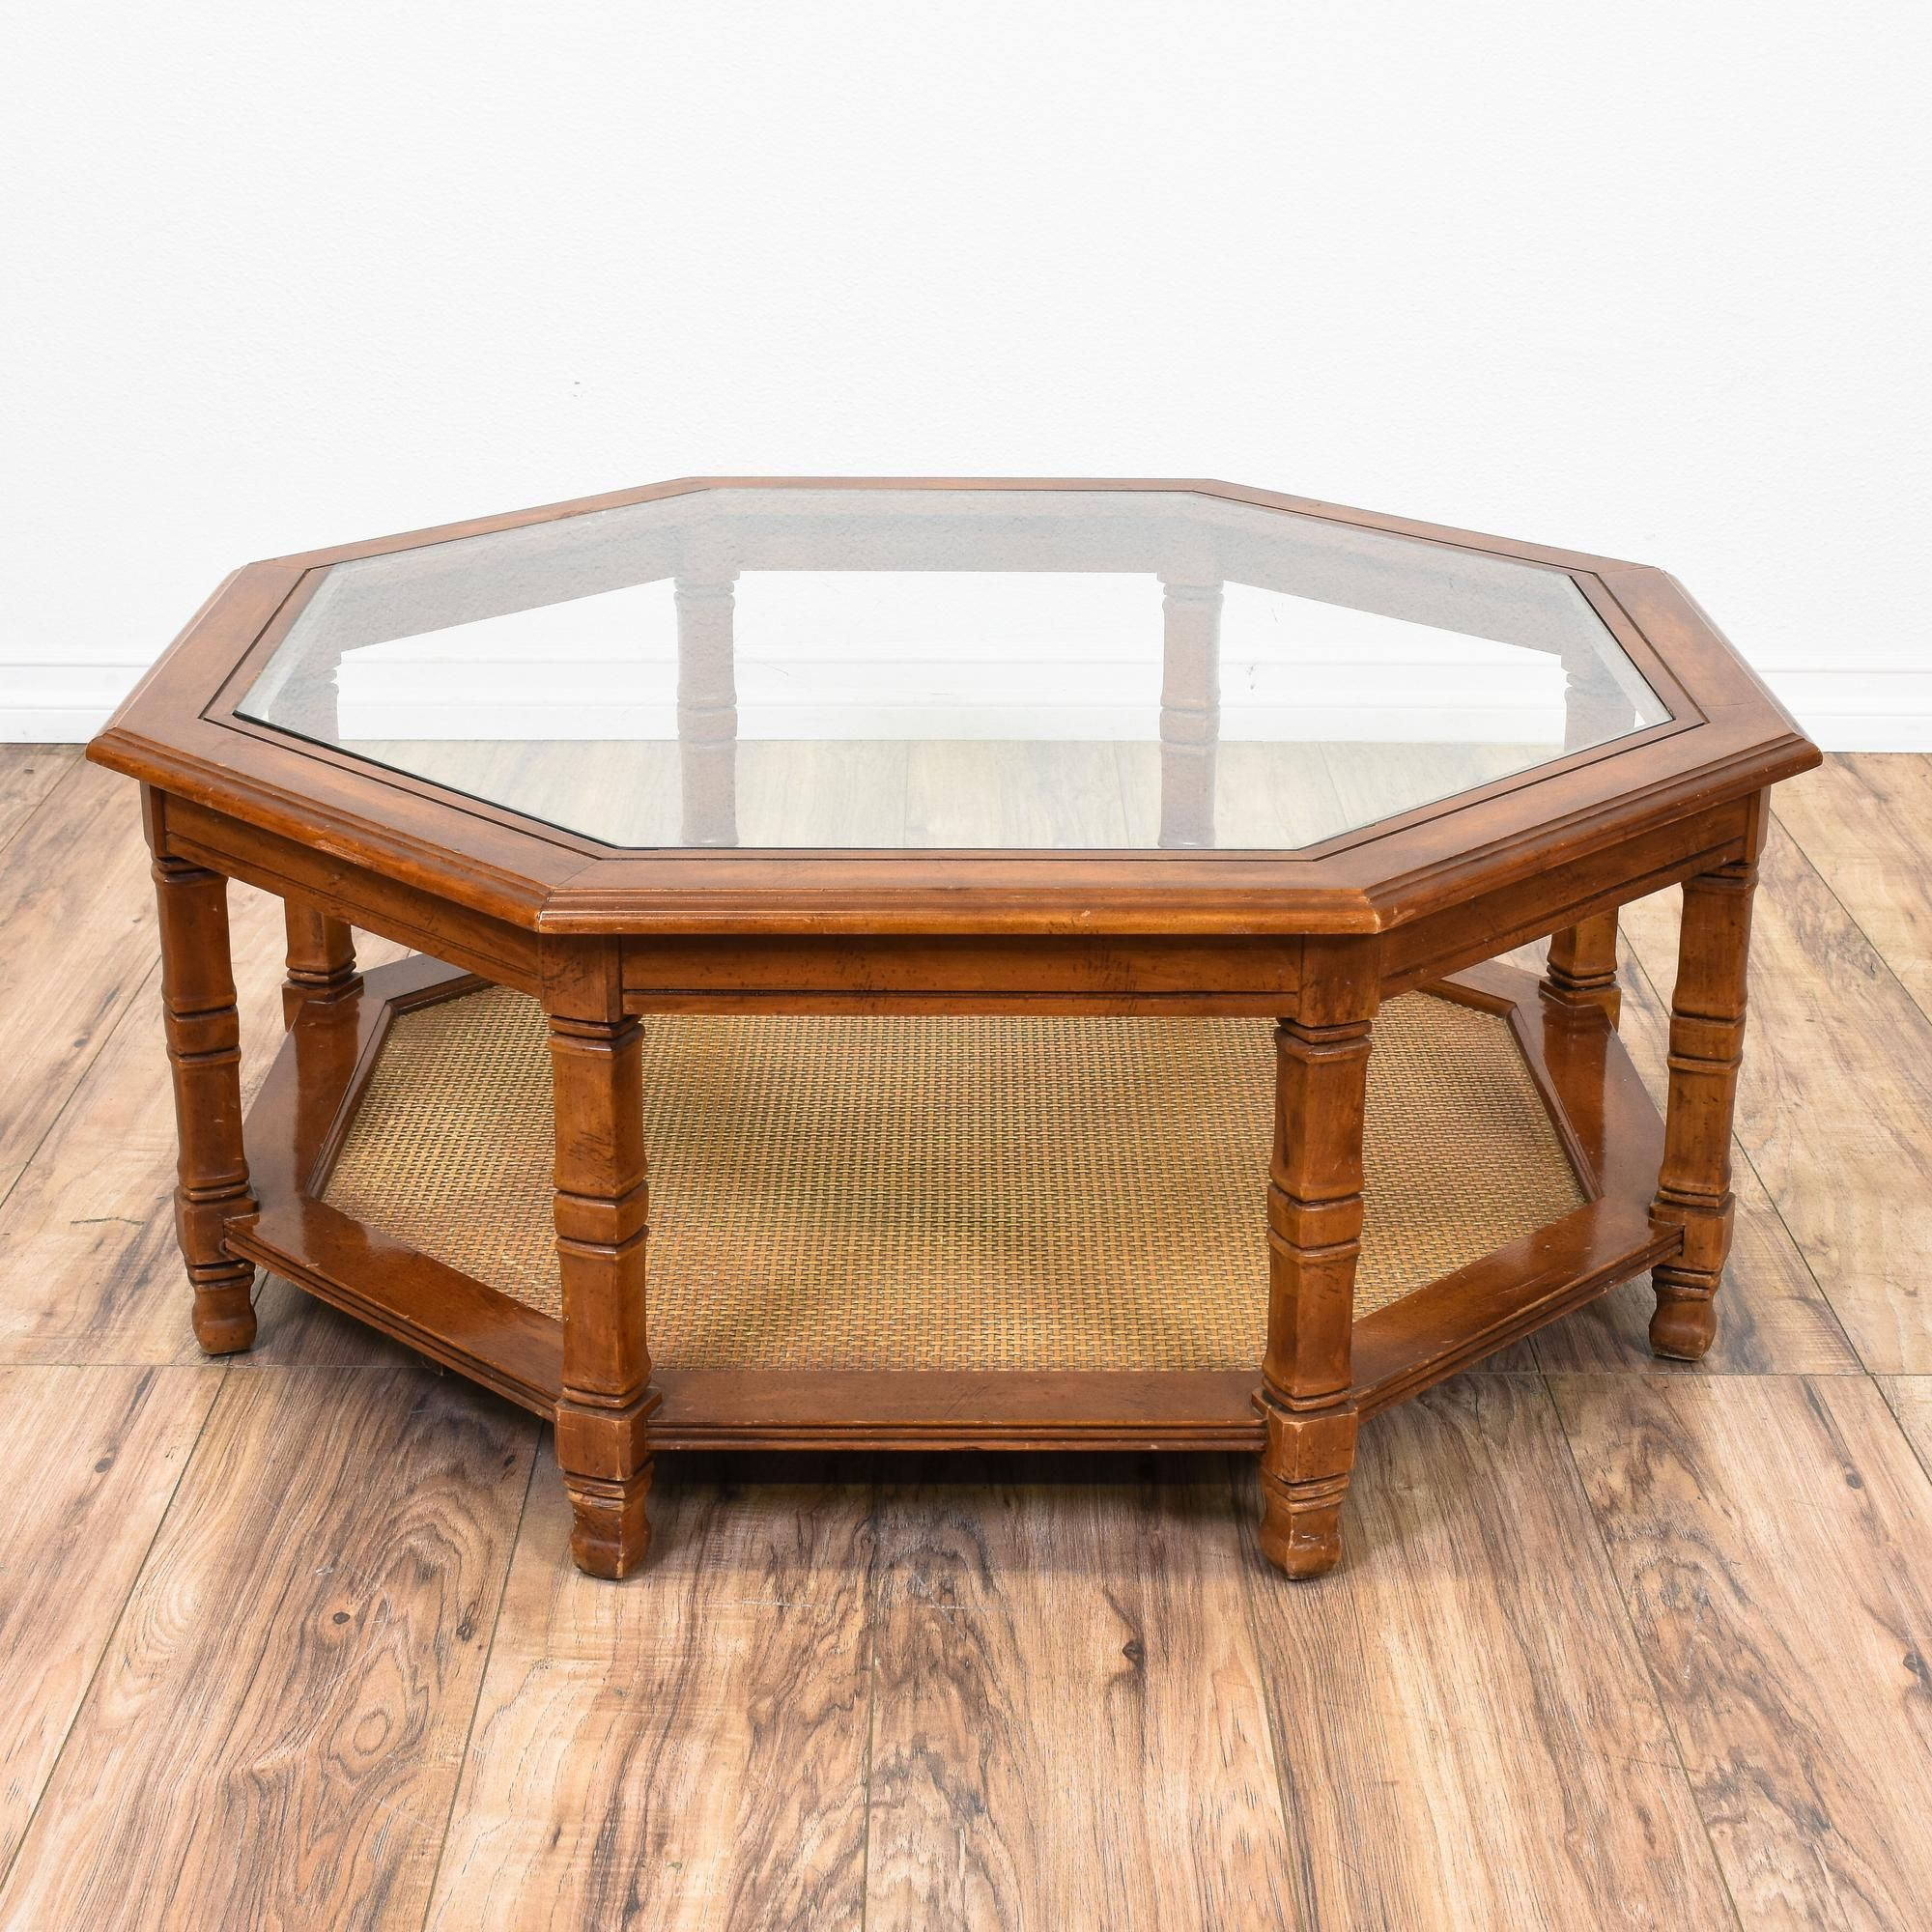 Buy Coffee Table Gold Coast: This Octagon Coffee Table Is Featured In A Solid Wood With